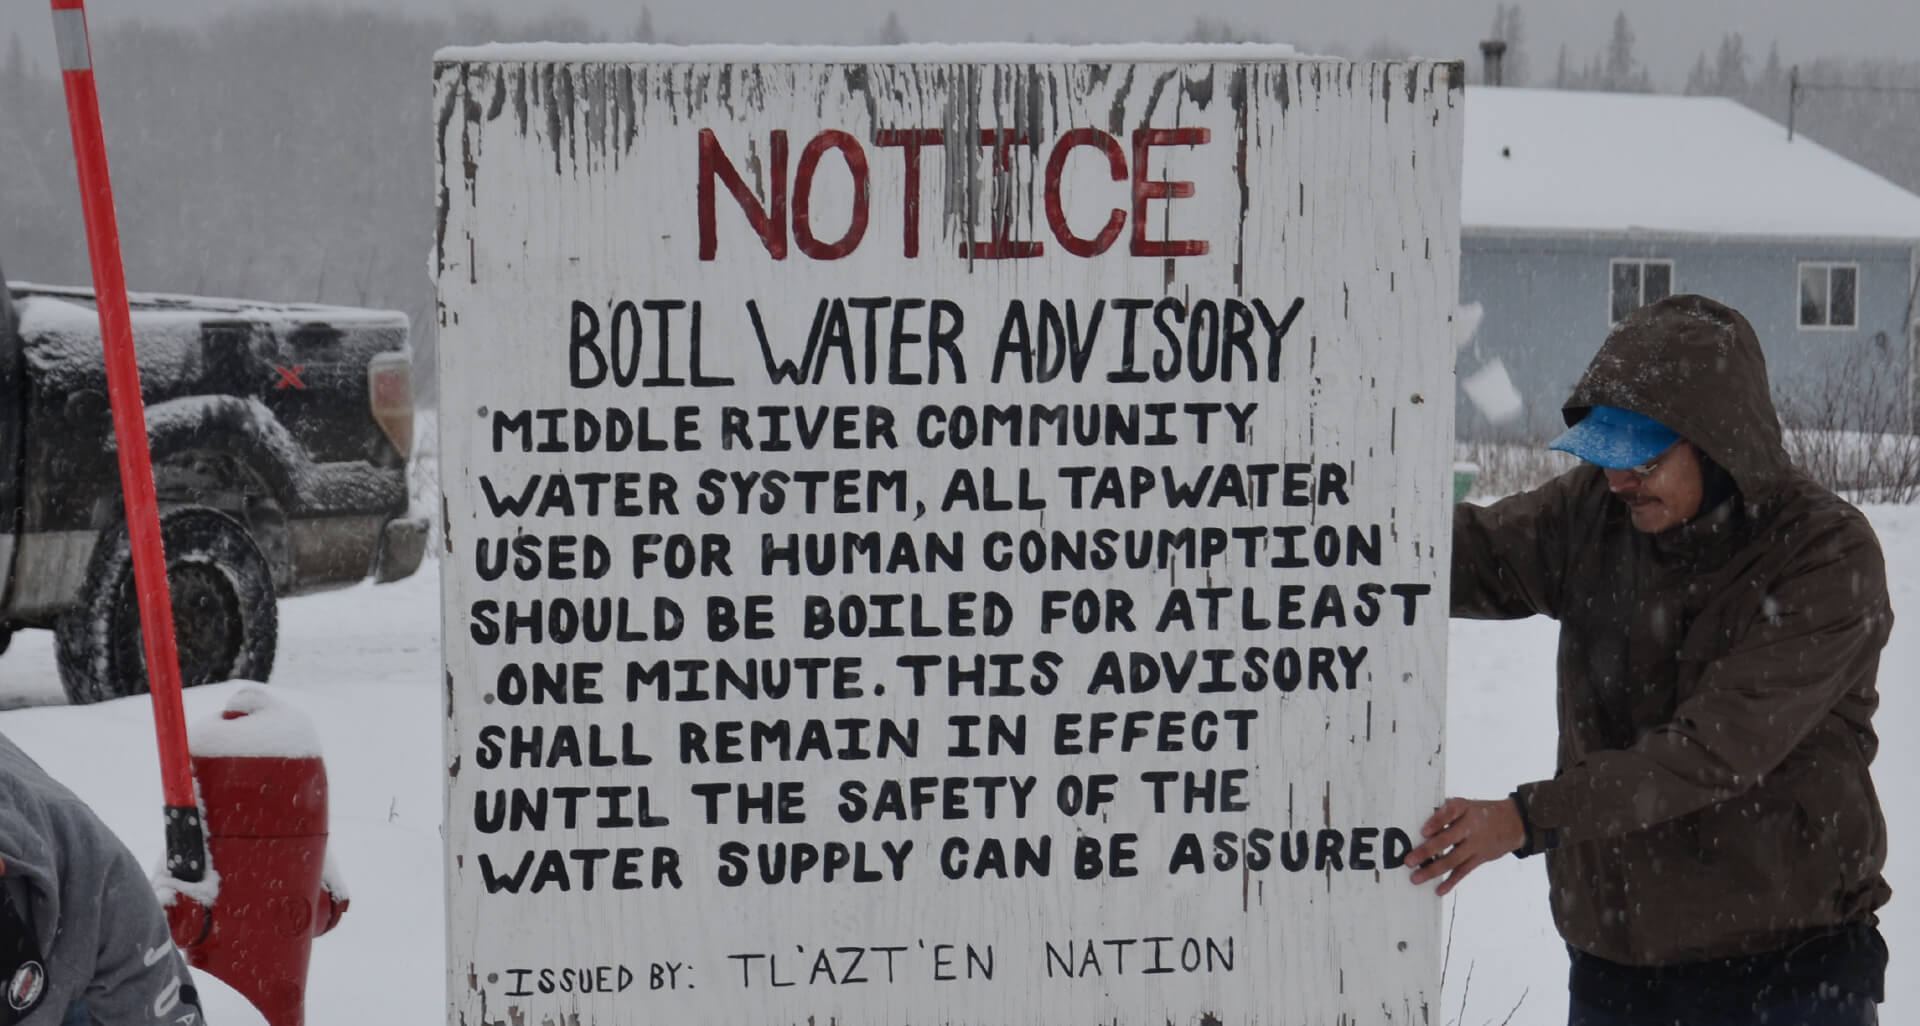 img-Long-standing boil water advisory sign removed by operators